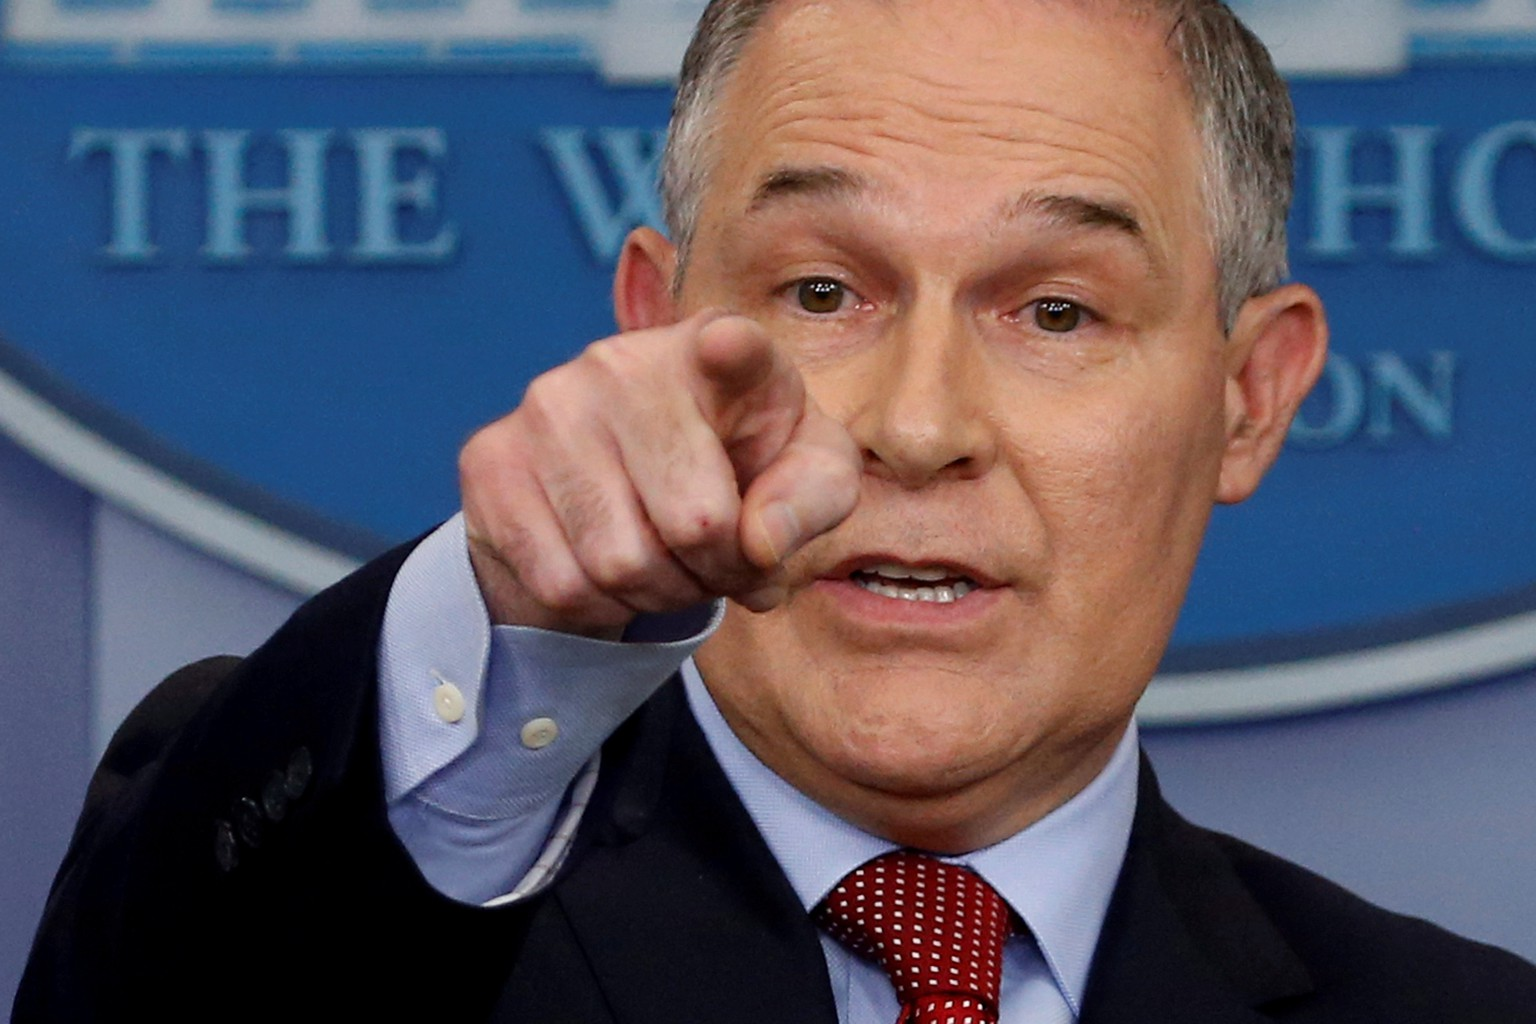 FILE PHOTO:    Environmental Protection Agency (EPA) Administrator Scott Pruitt takes questions about the Trump administration's withdrawal of the U.S. from the Paris climate accords during the daily briefing at the White House in Washington, U.S., June 2, 2017.  REUTERS/Jonathan Ernst/File Photo